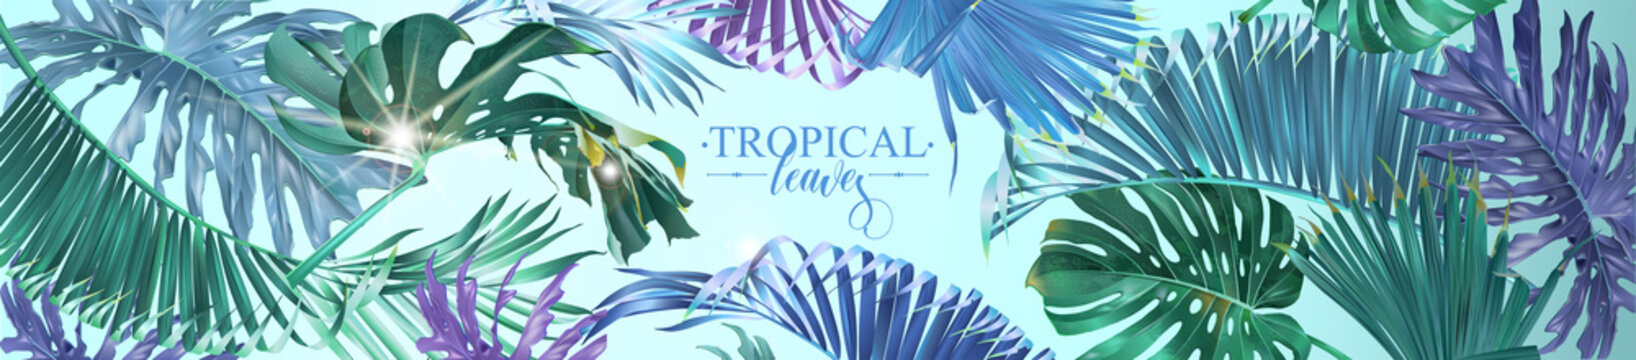 Vector horizontal tropical leaves banner on light blue background. Exotic botanical design for cosmetics, spa, perfume, health care products, aroma, wedding invitation. Best as web banner